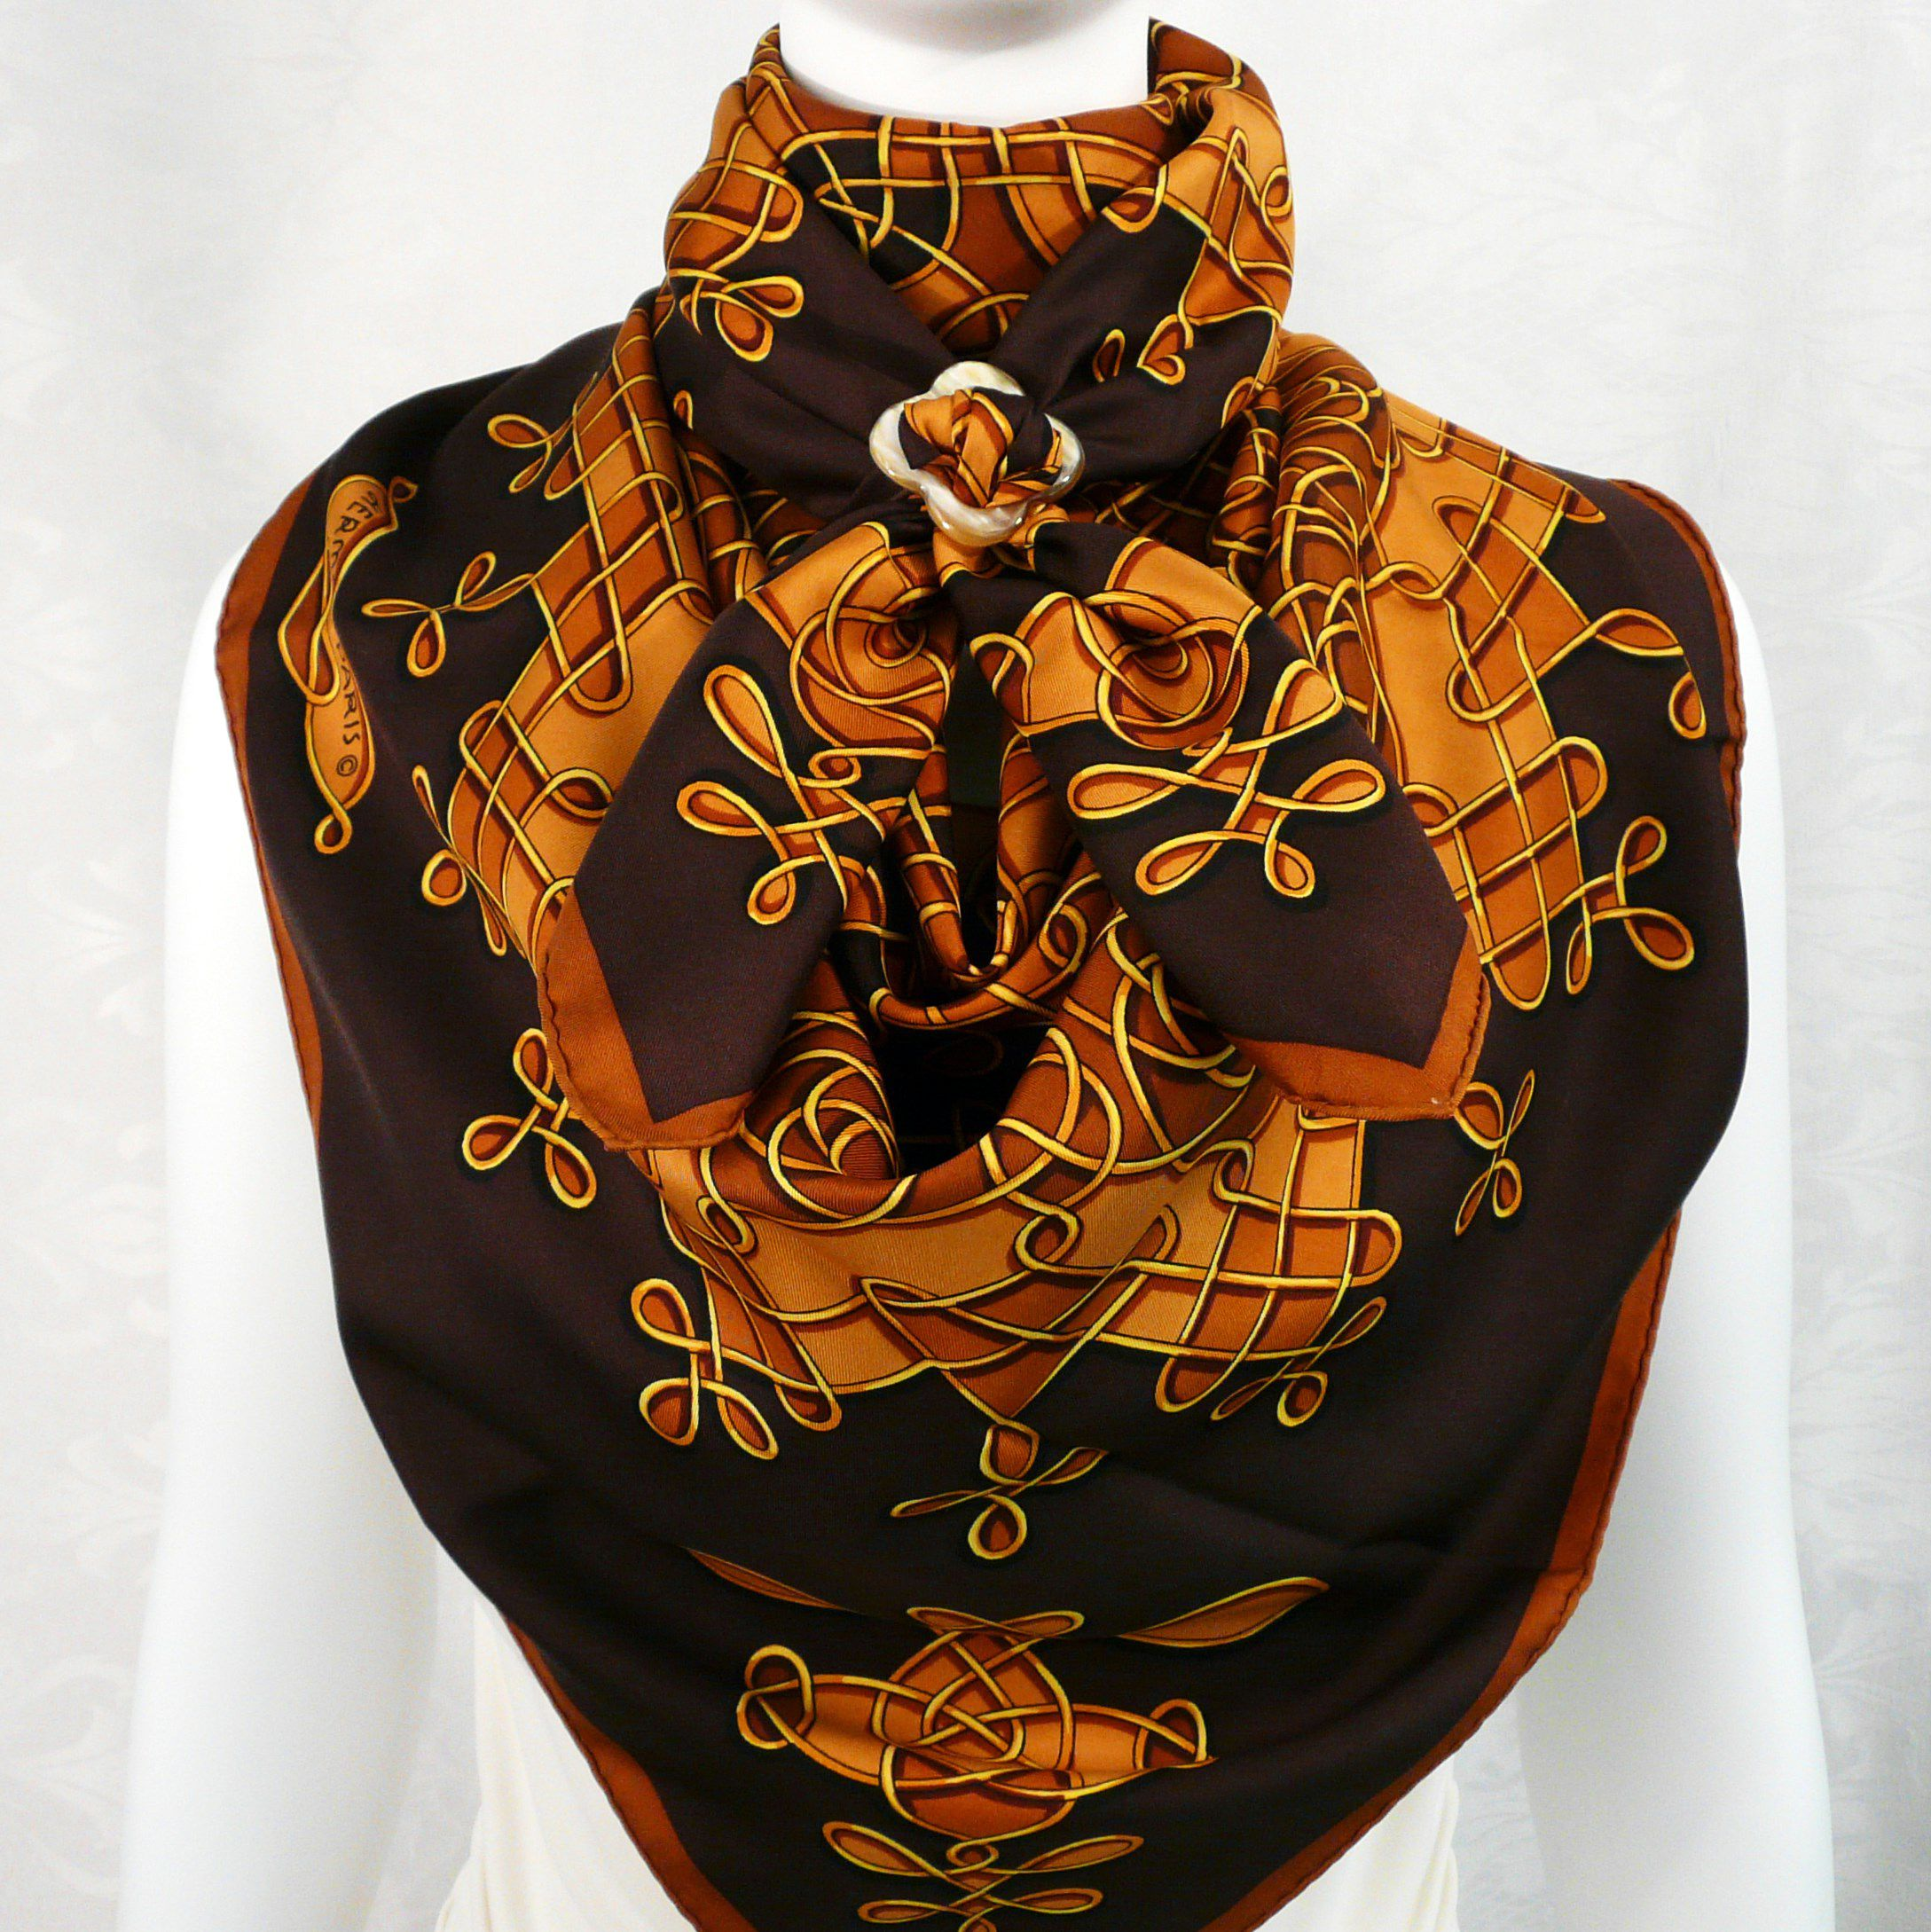 2 Vinci HERMES Scarves with Anneau de Luxe Horn Scarf Ring Carre de Paris II